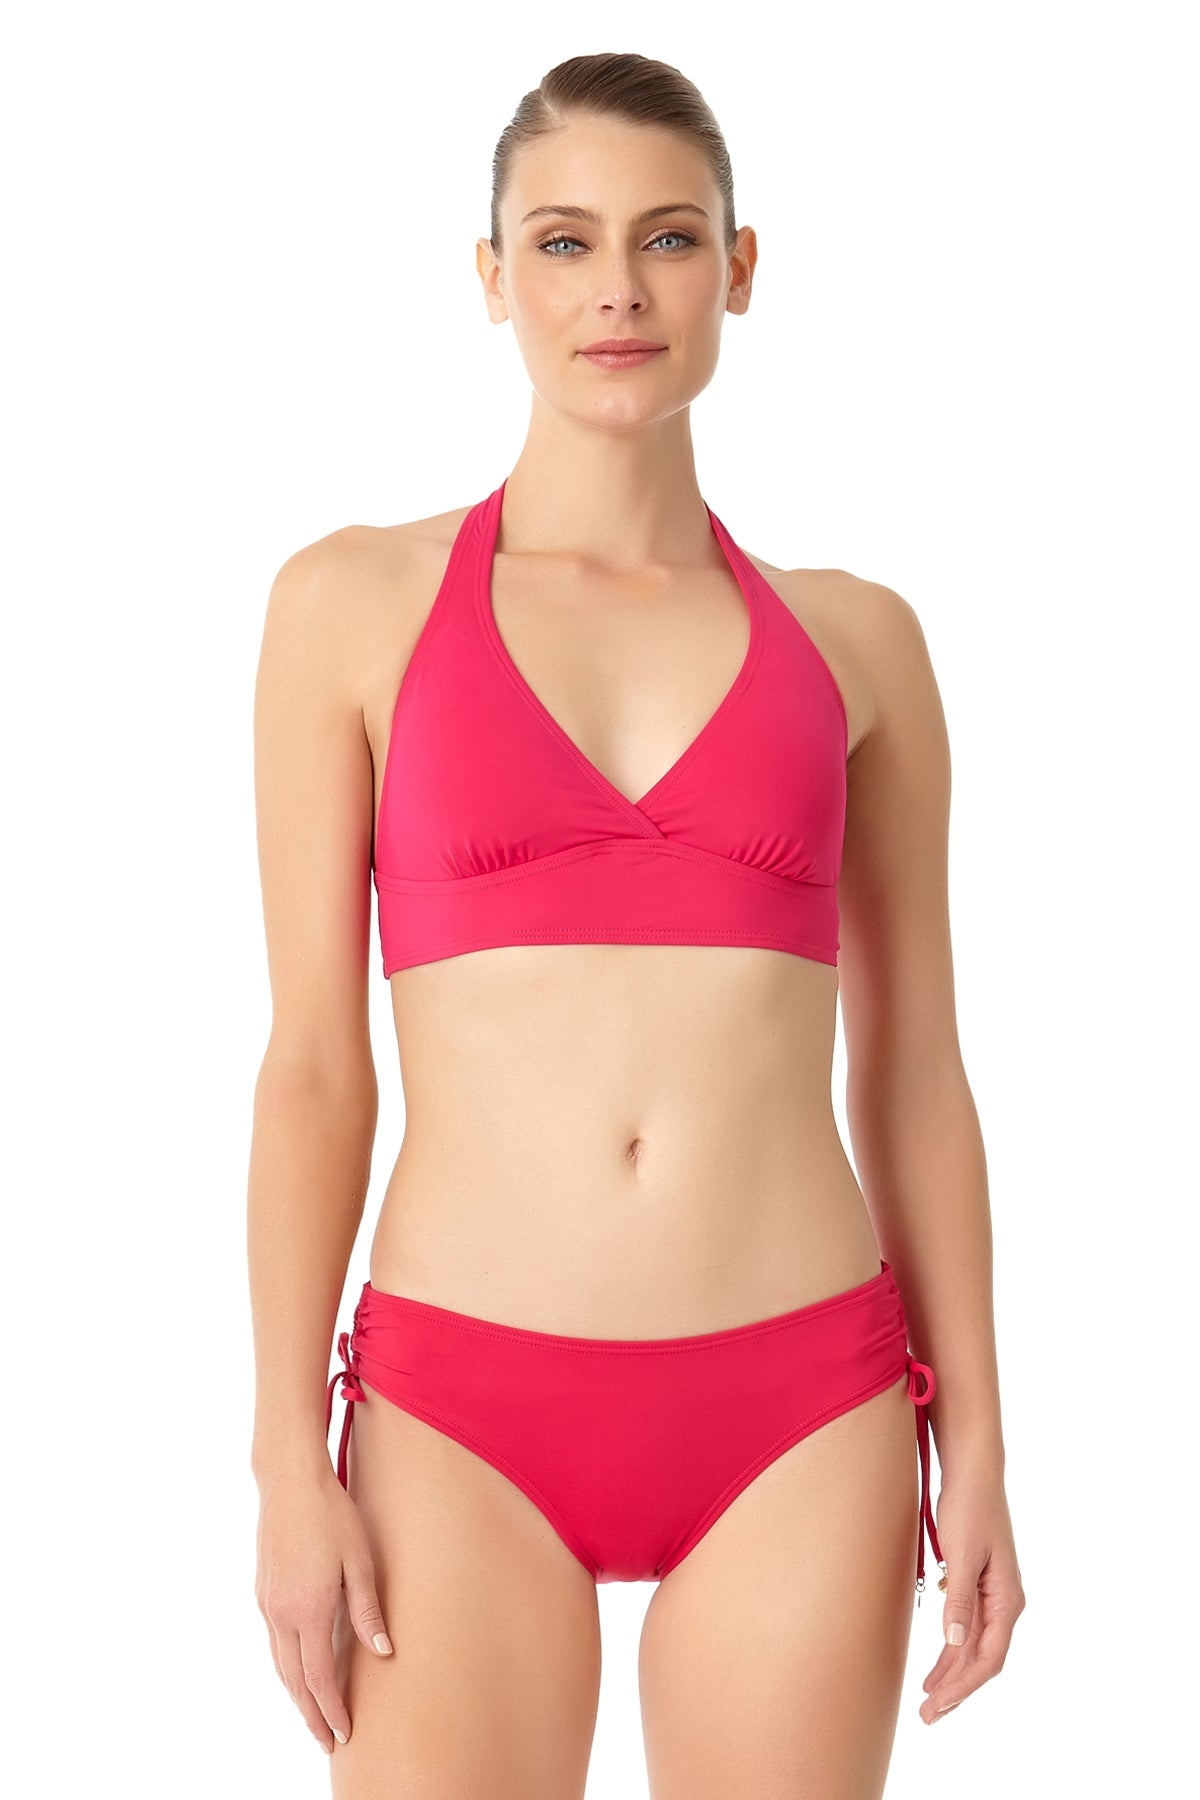 Anne Cole - Live In Color Marilyn Halter Bra Swim Top